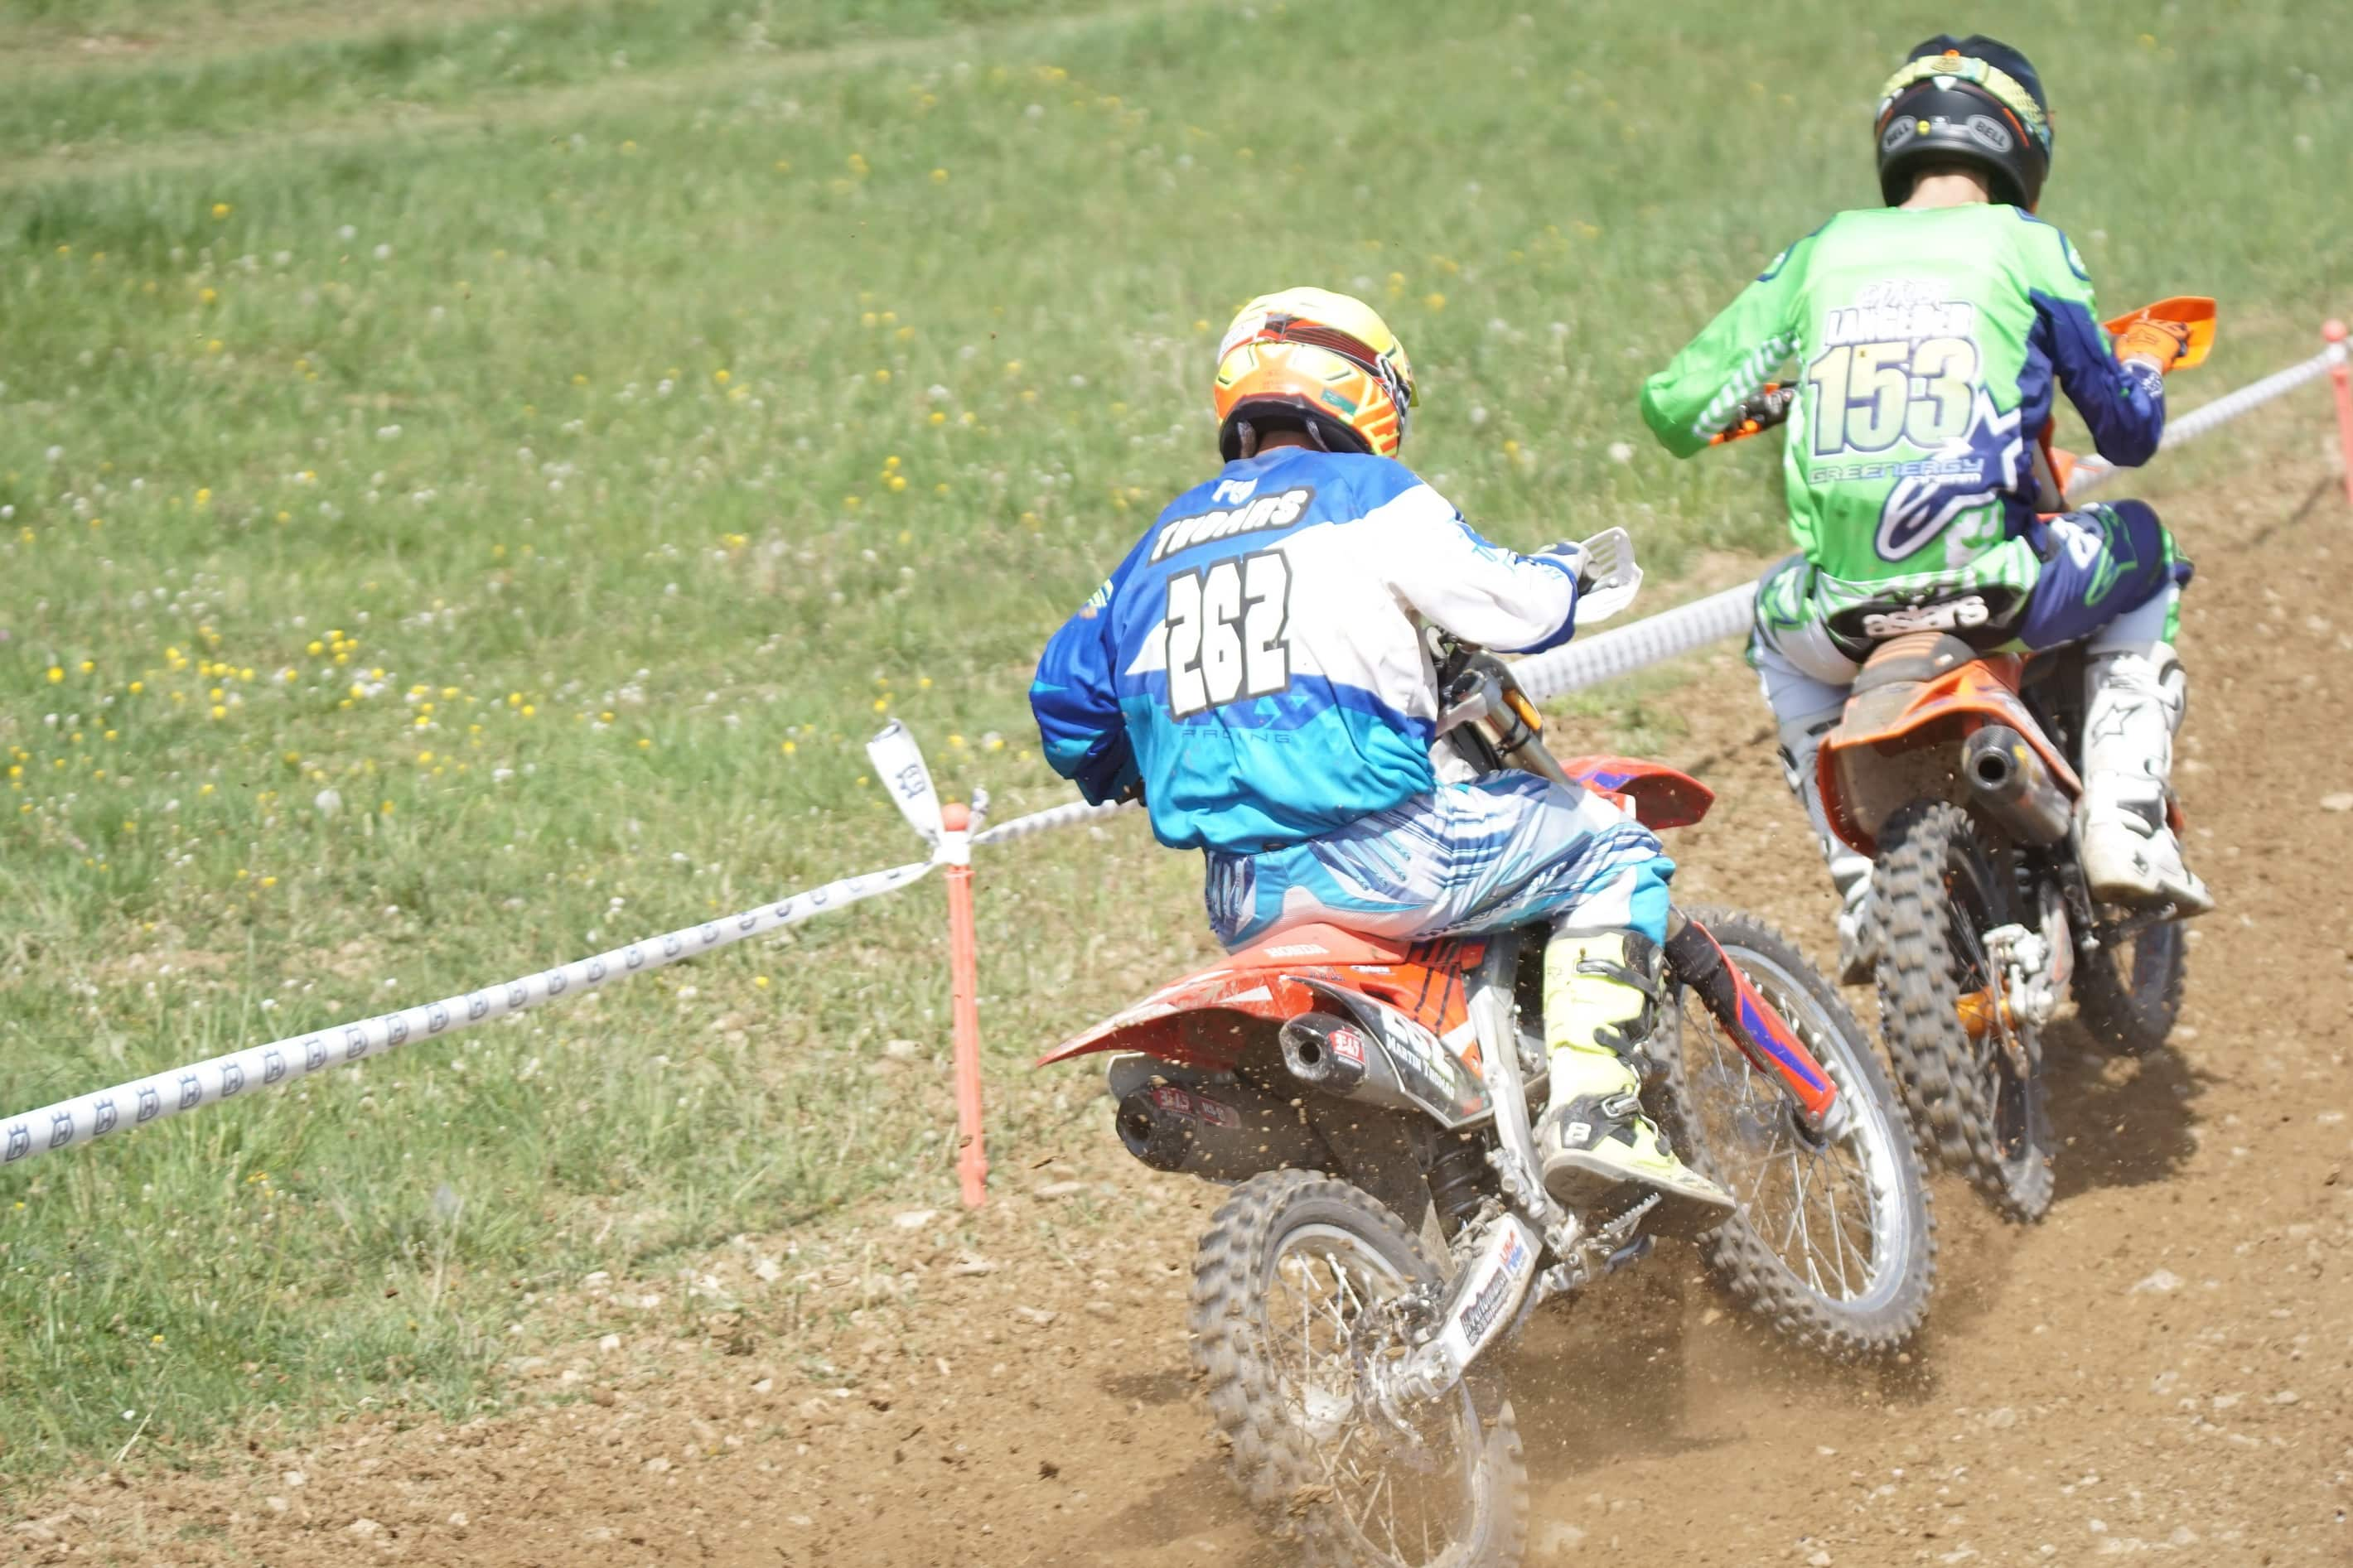 DSC 612_Moto Cross Sittendorf Teil1 am 29.04.2018